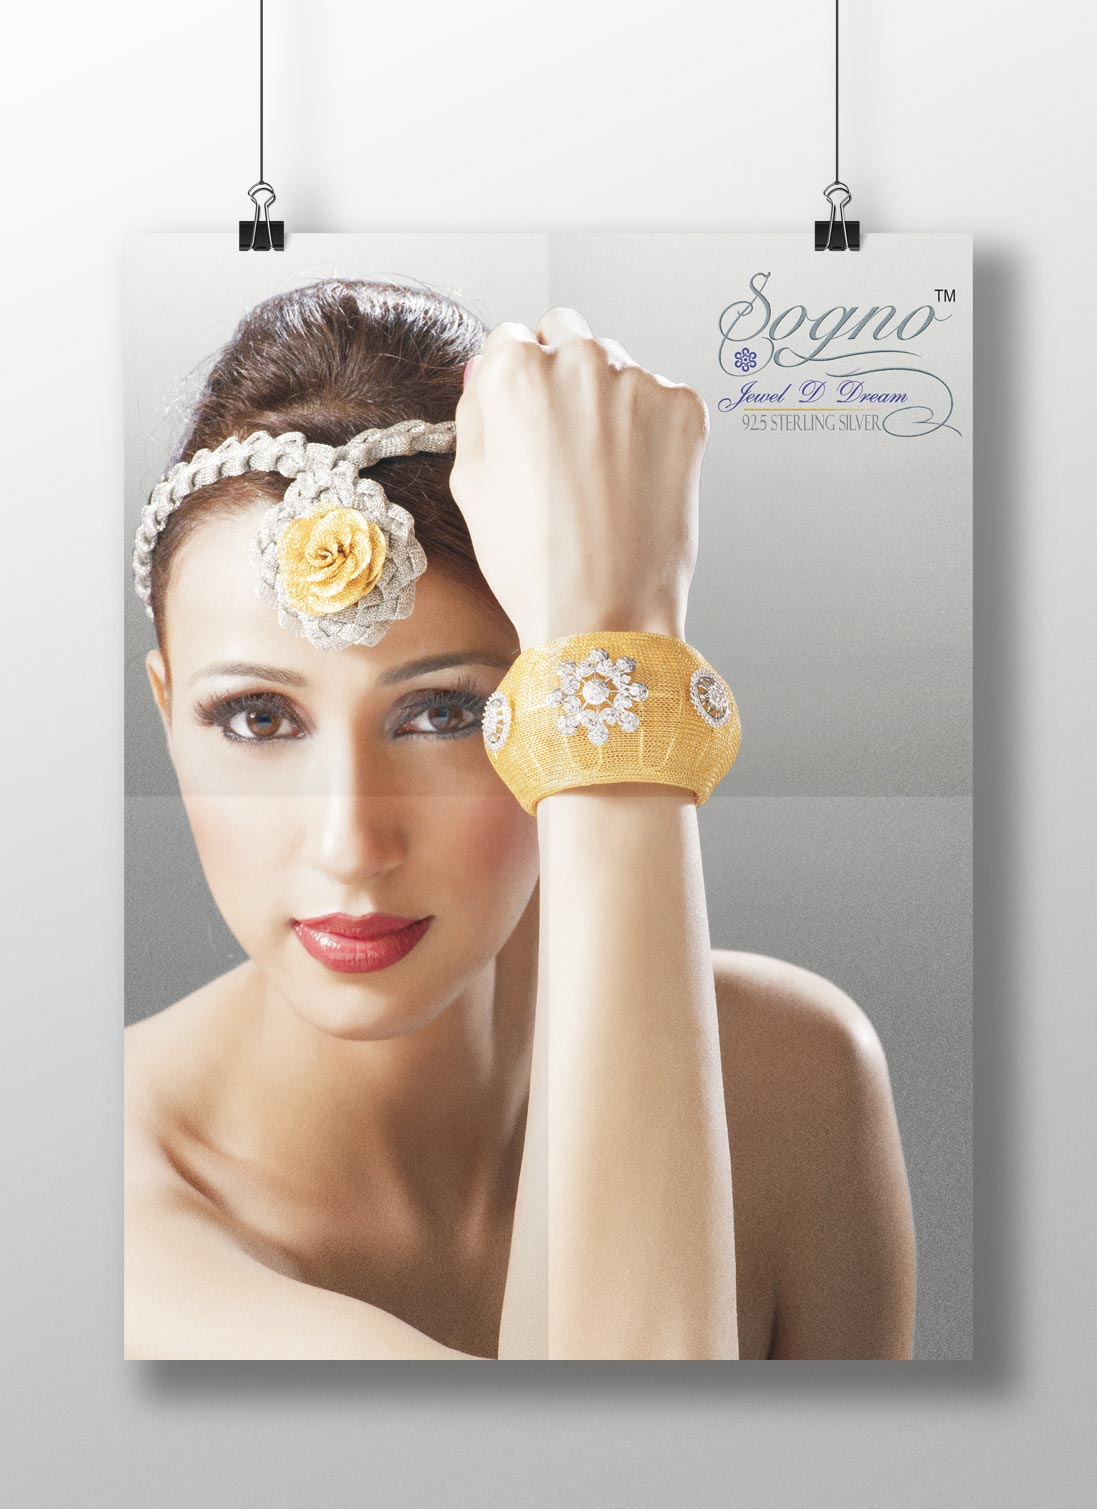 Sogno Jewels Posters